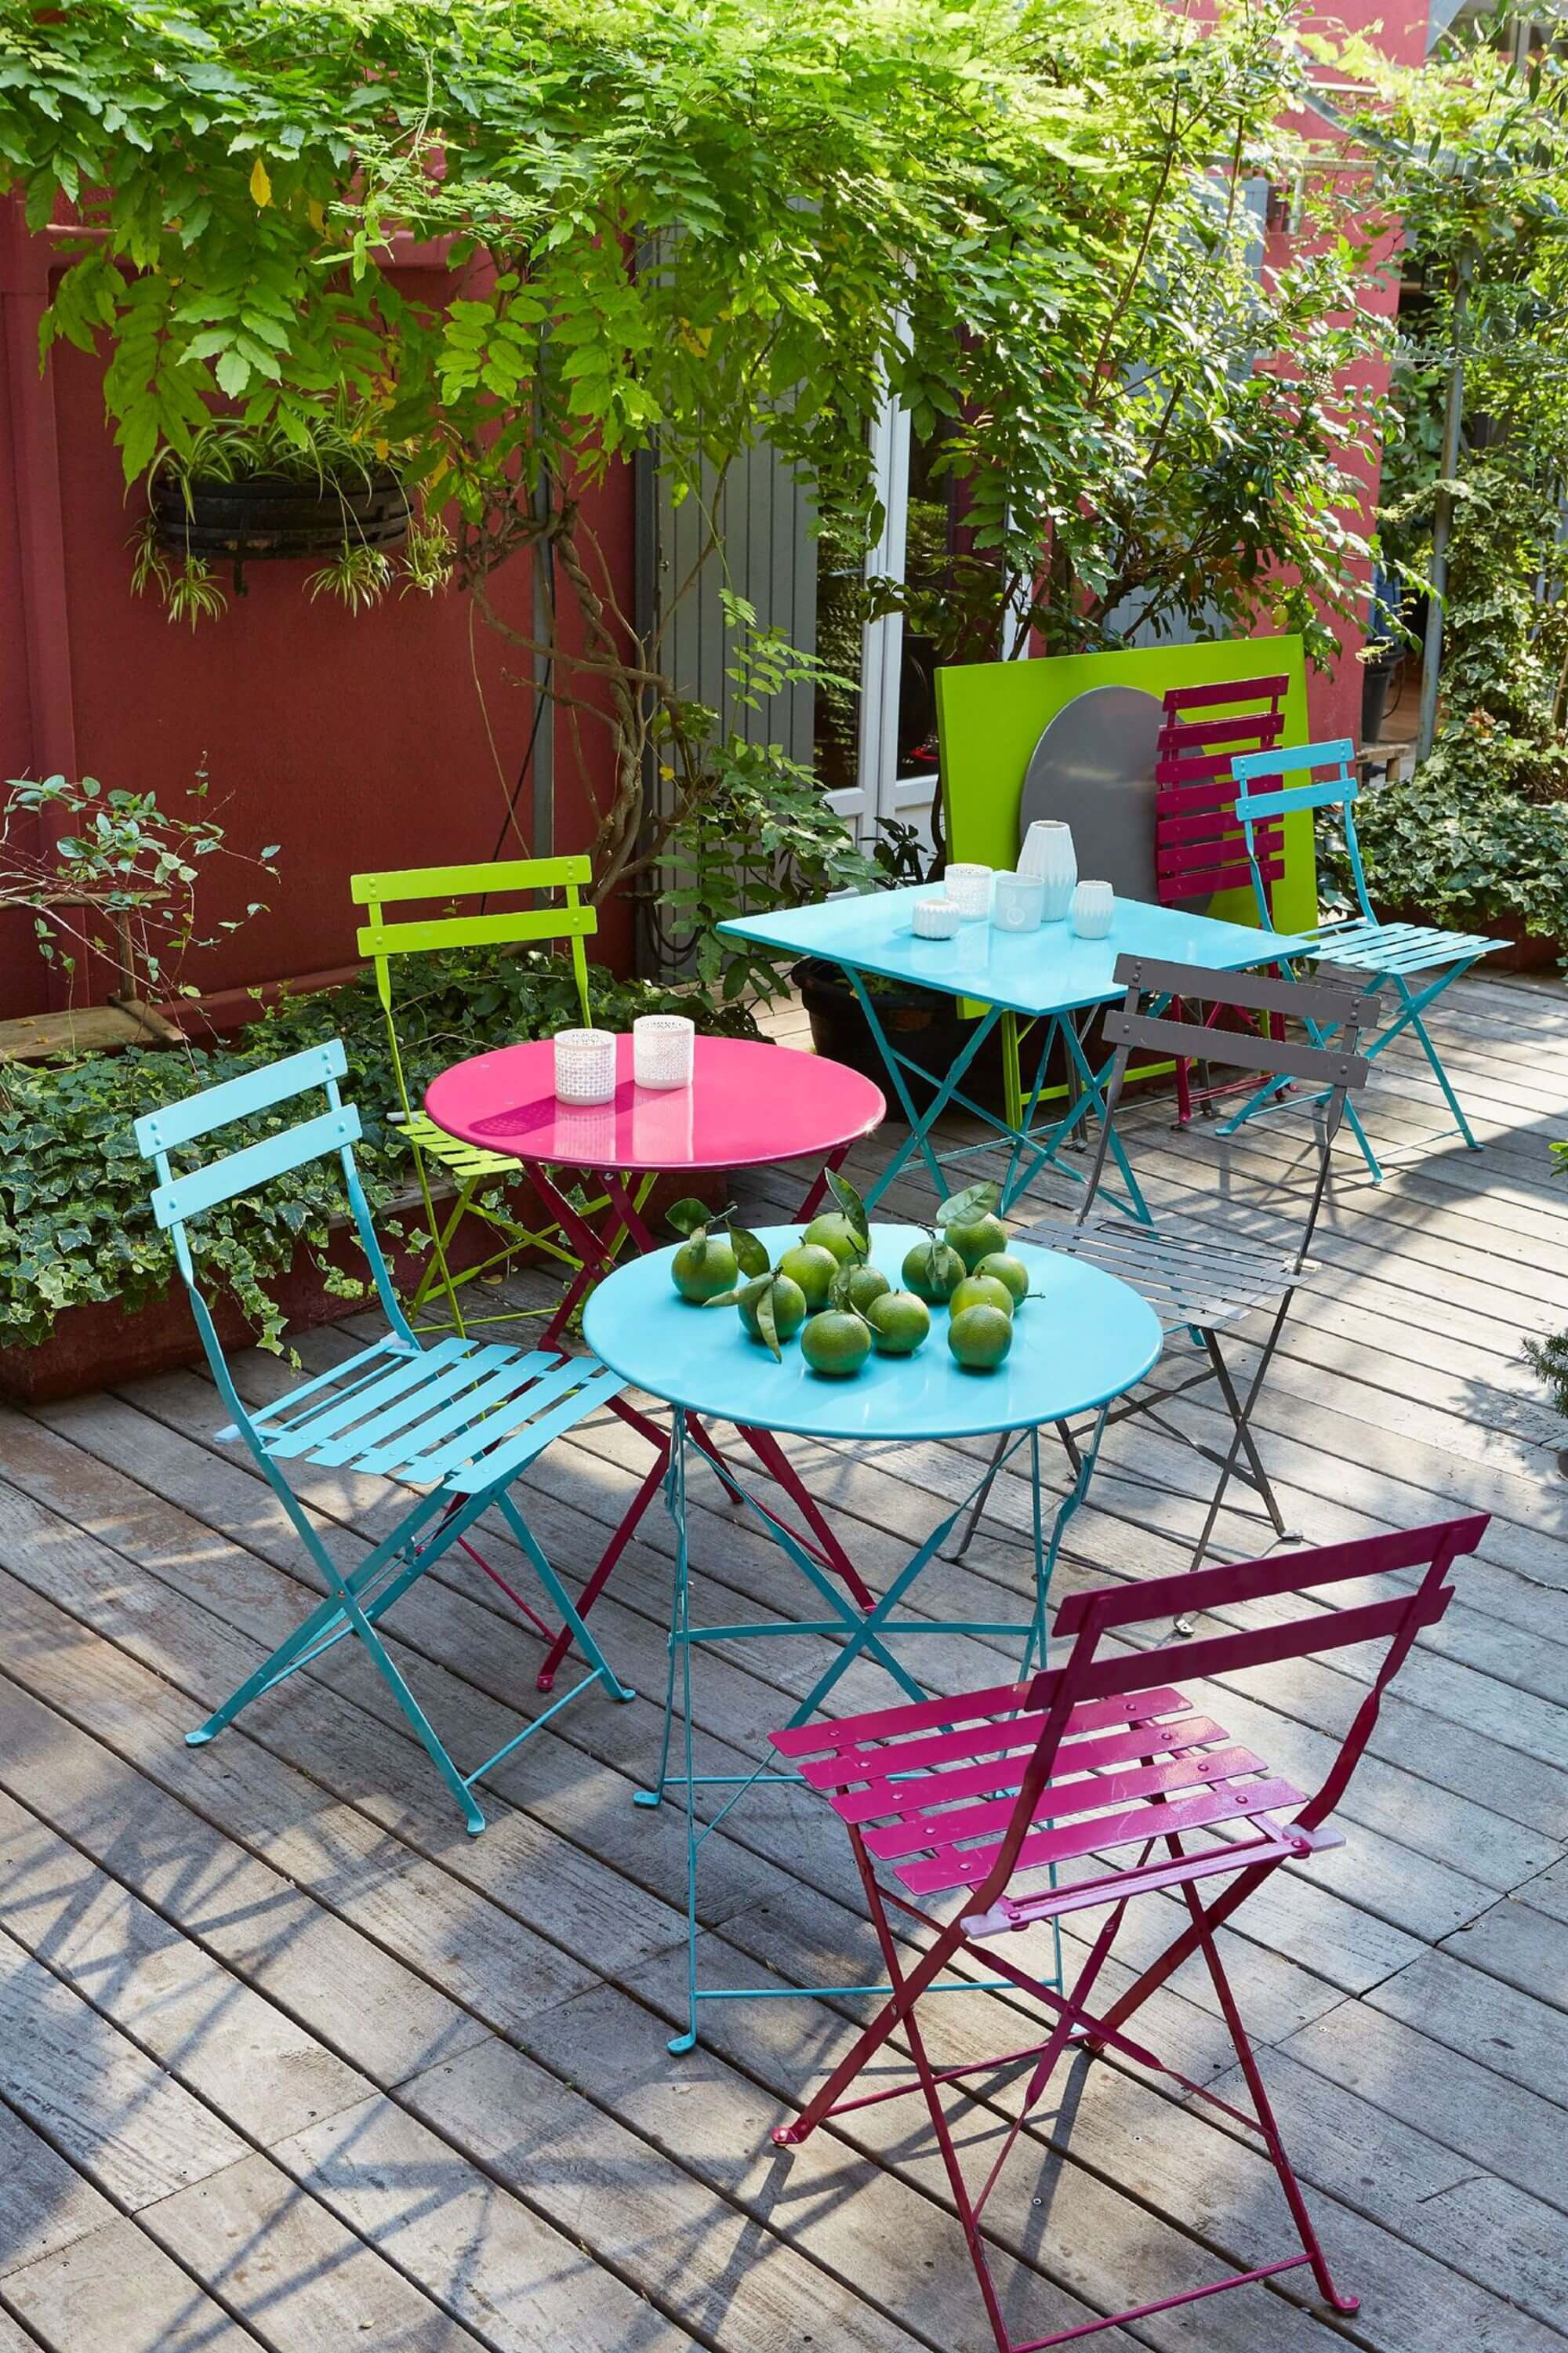 ideas_para_decorar_tu_jardín_con_sillas_de_colores